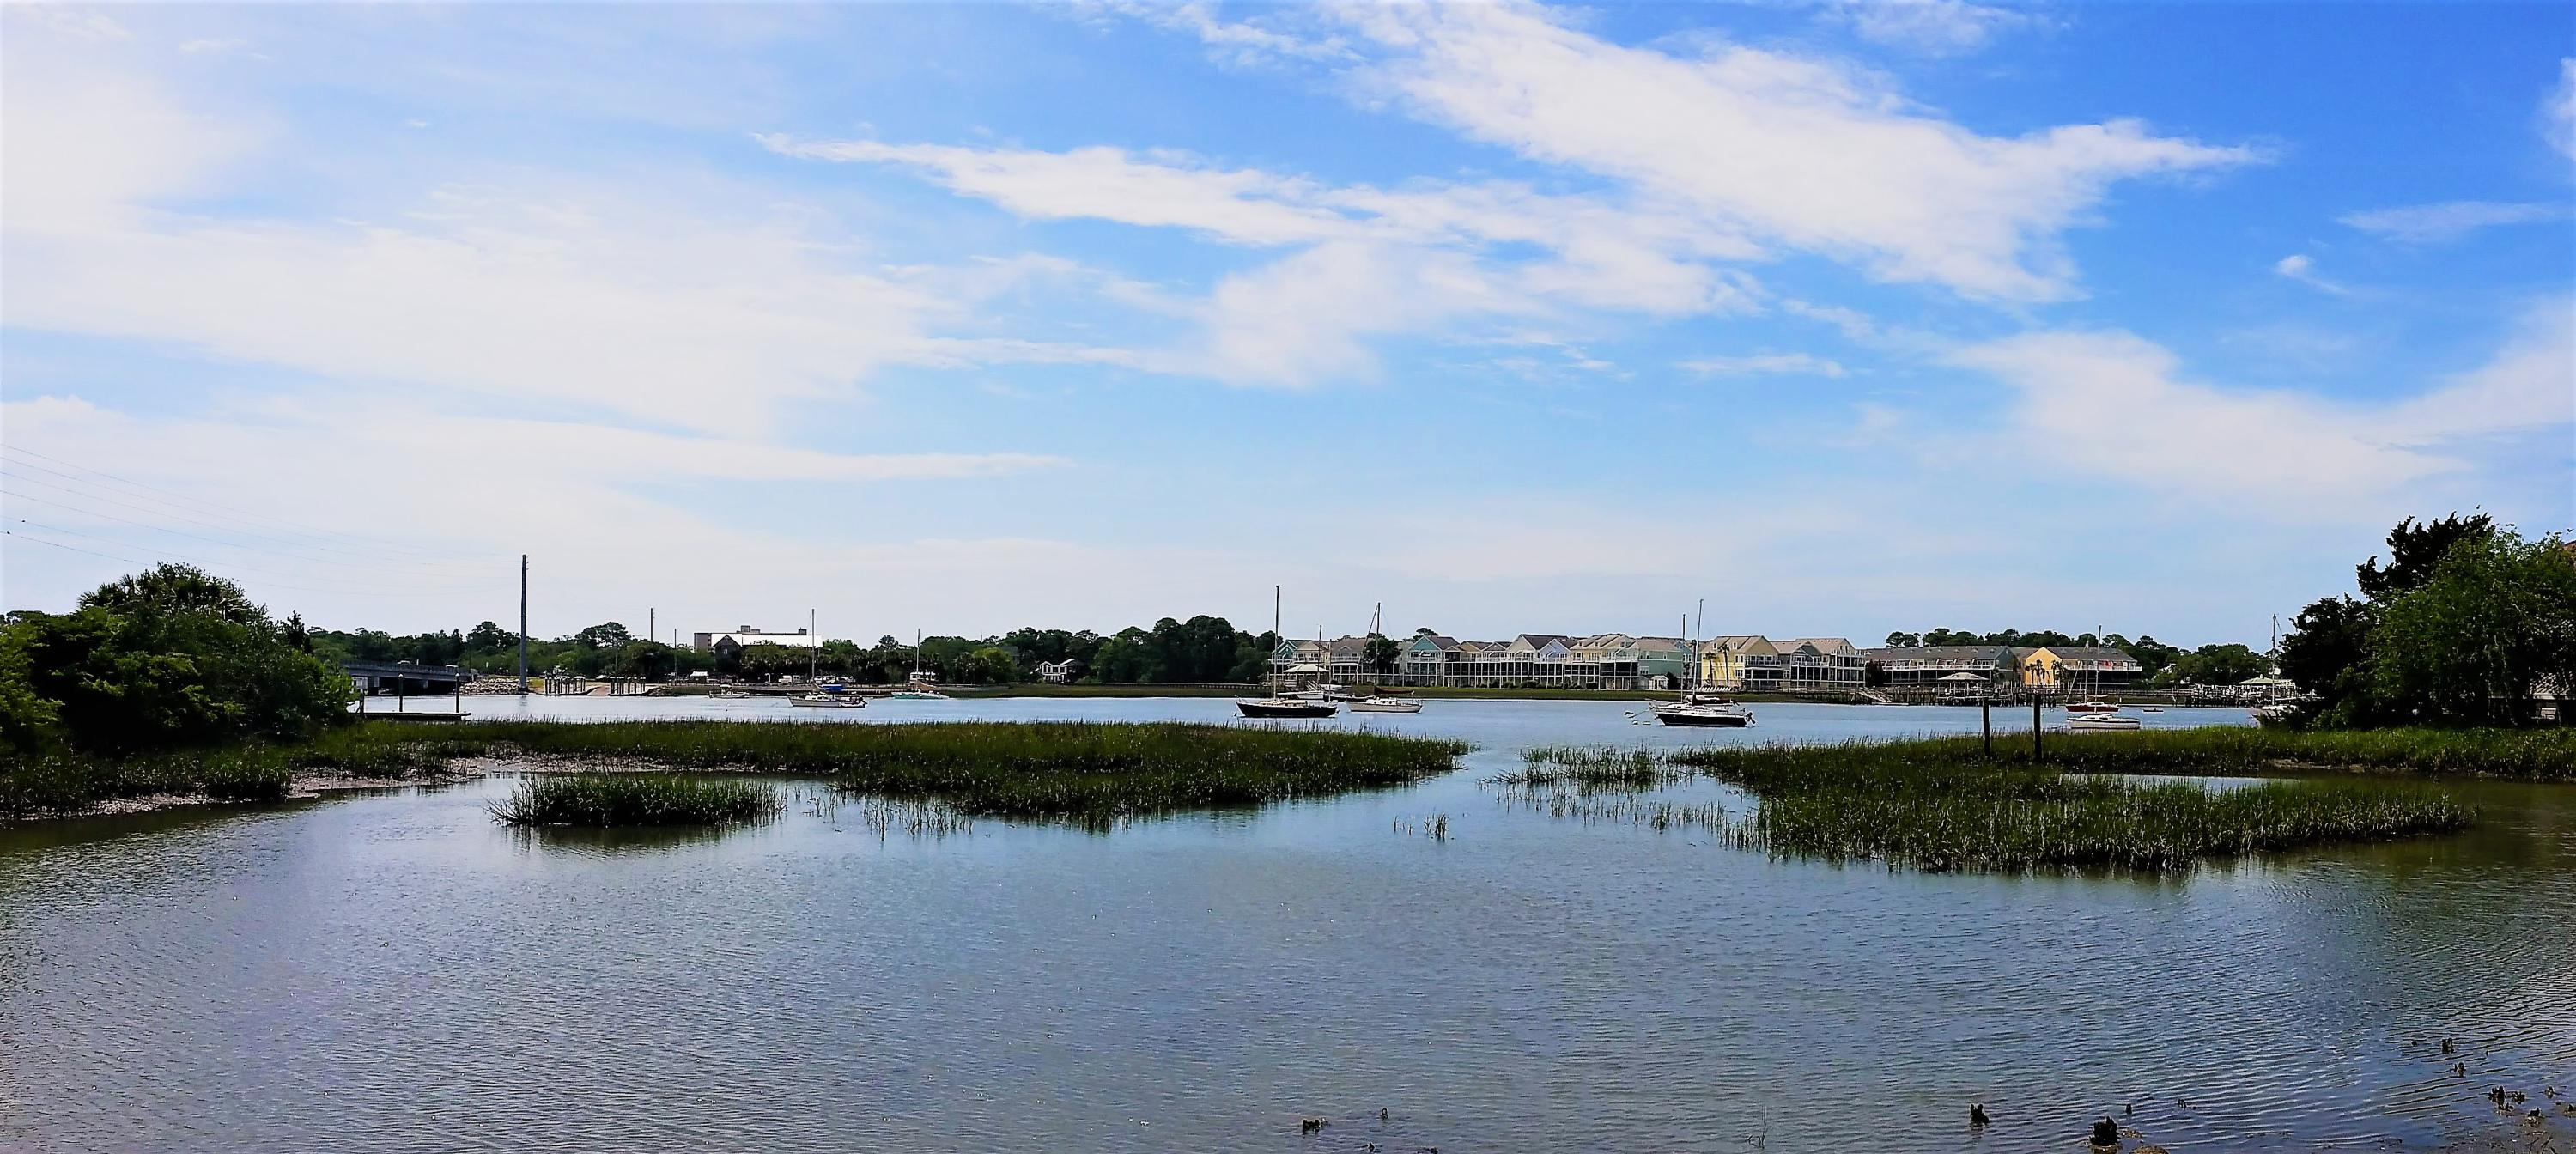 Mariners Cay Homes For Sale - 16 Mariners Cay, Folly Beach, SC - 34